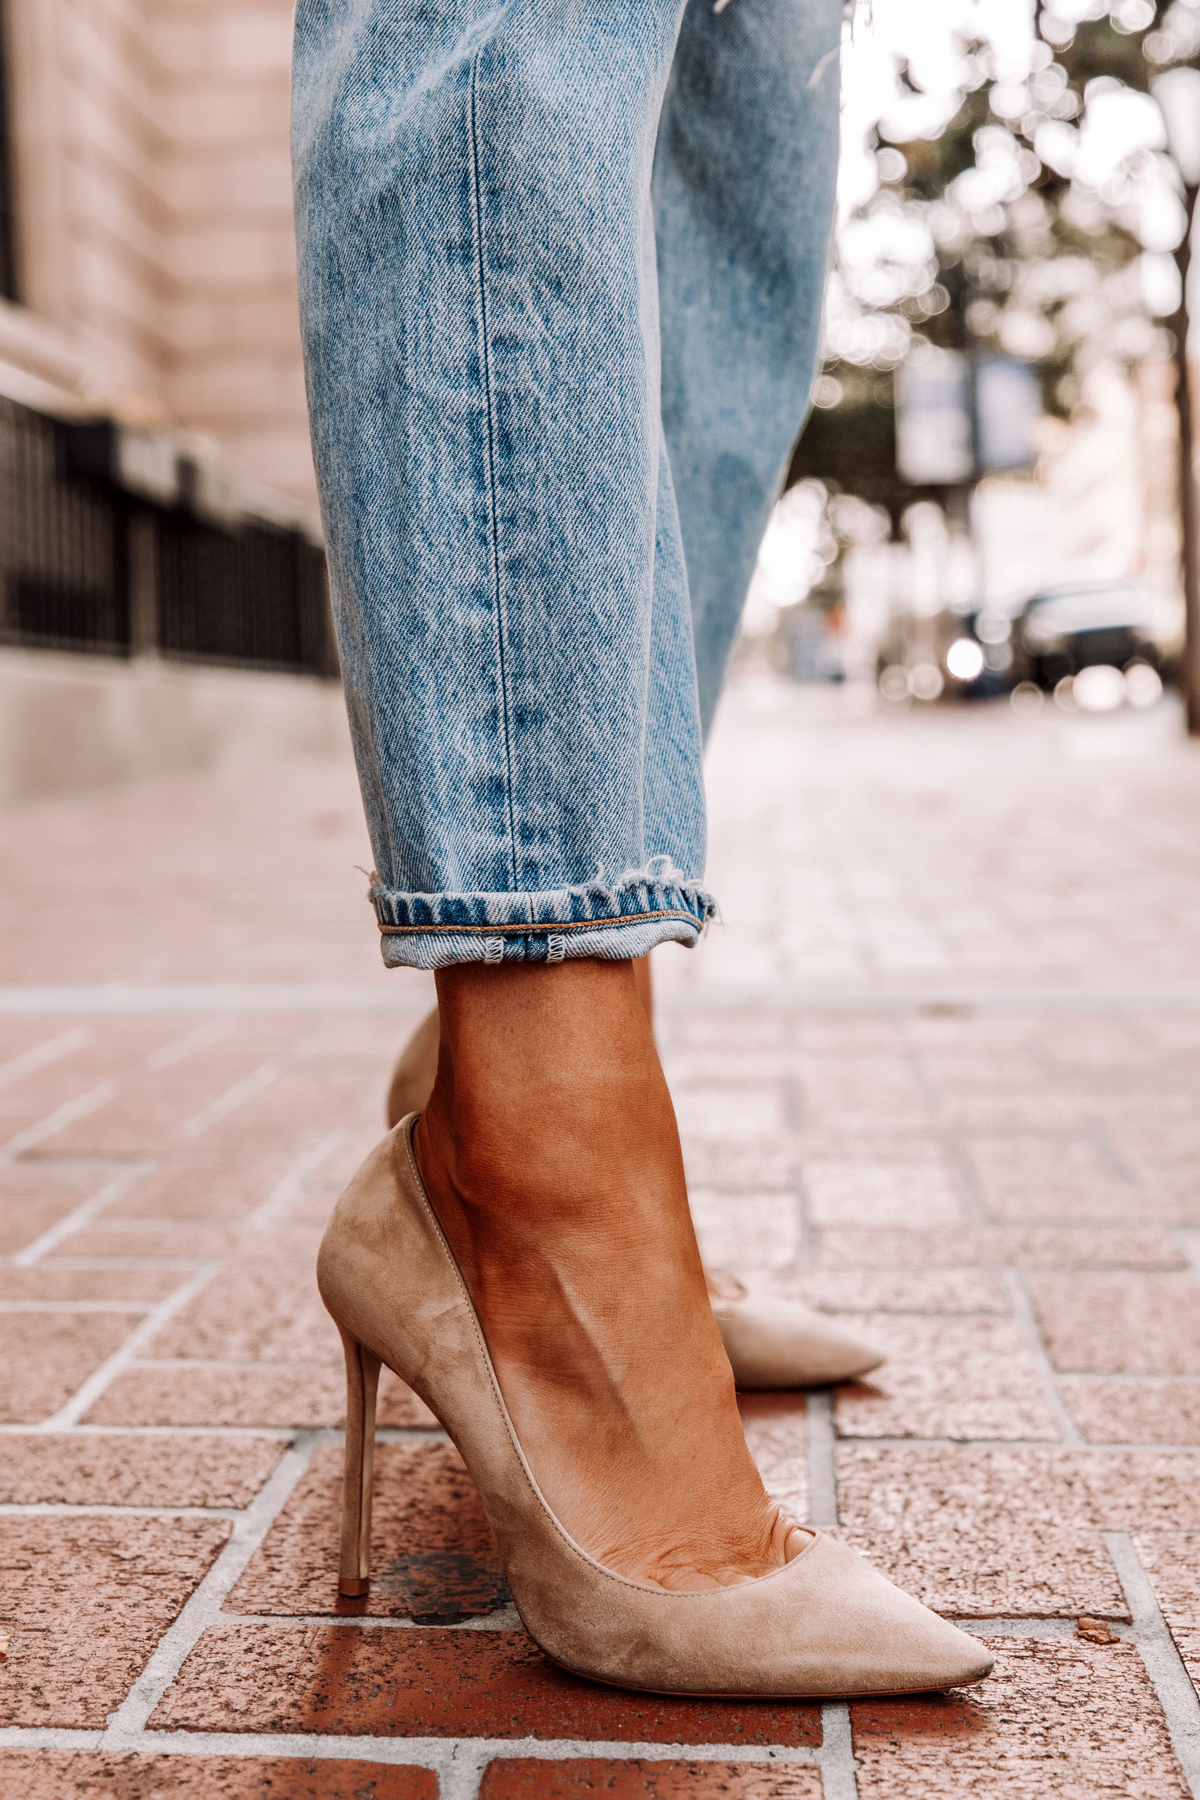 Fashion Jackson Wearing Jeans and Jimmy Choo Romy Nude Pumps